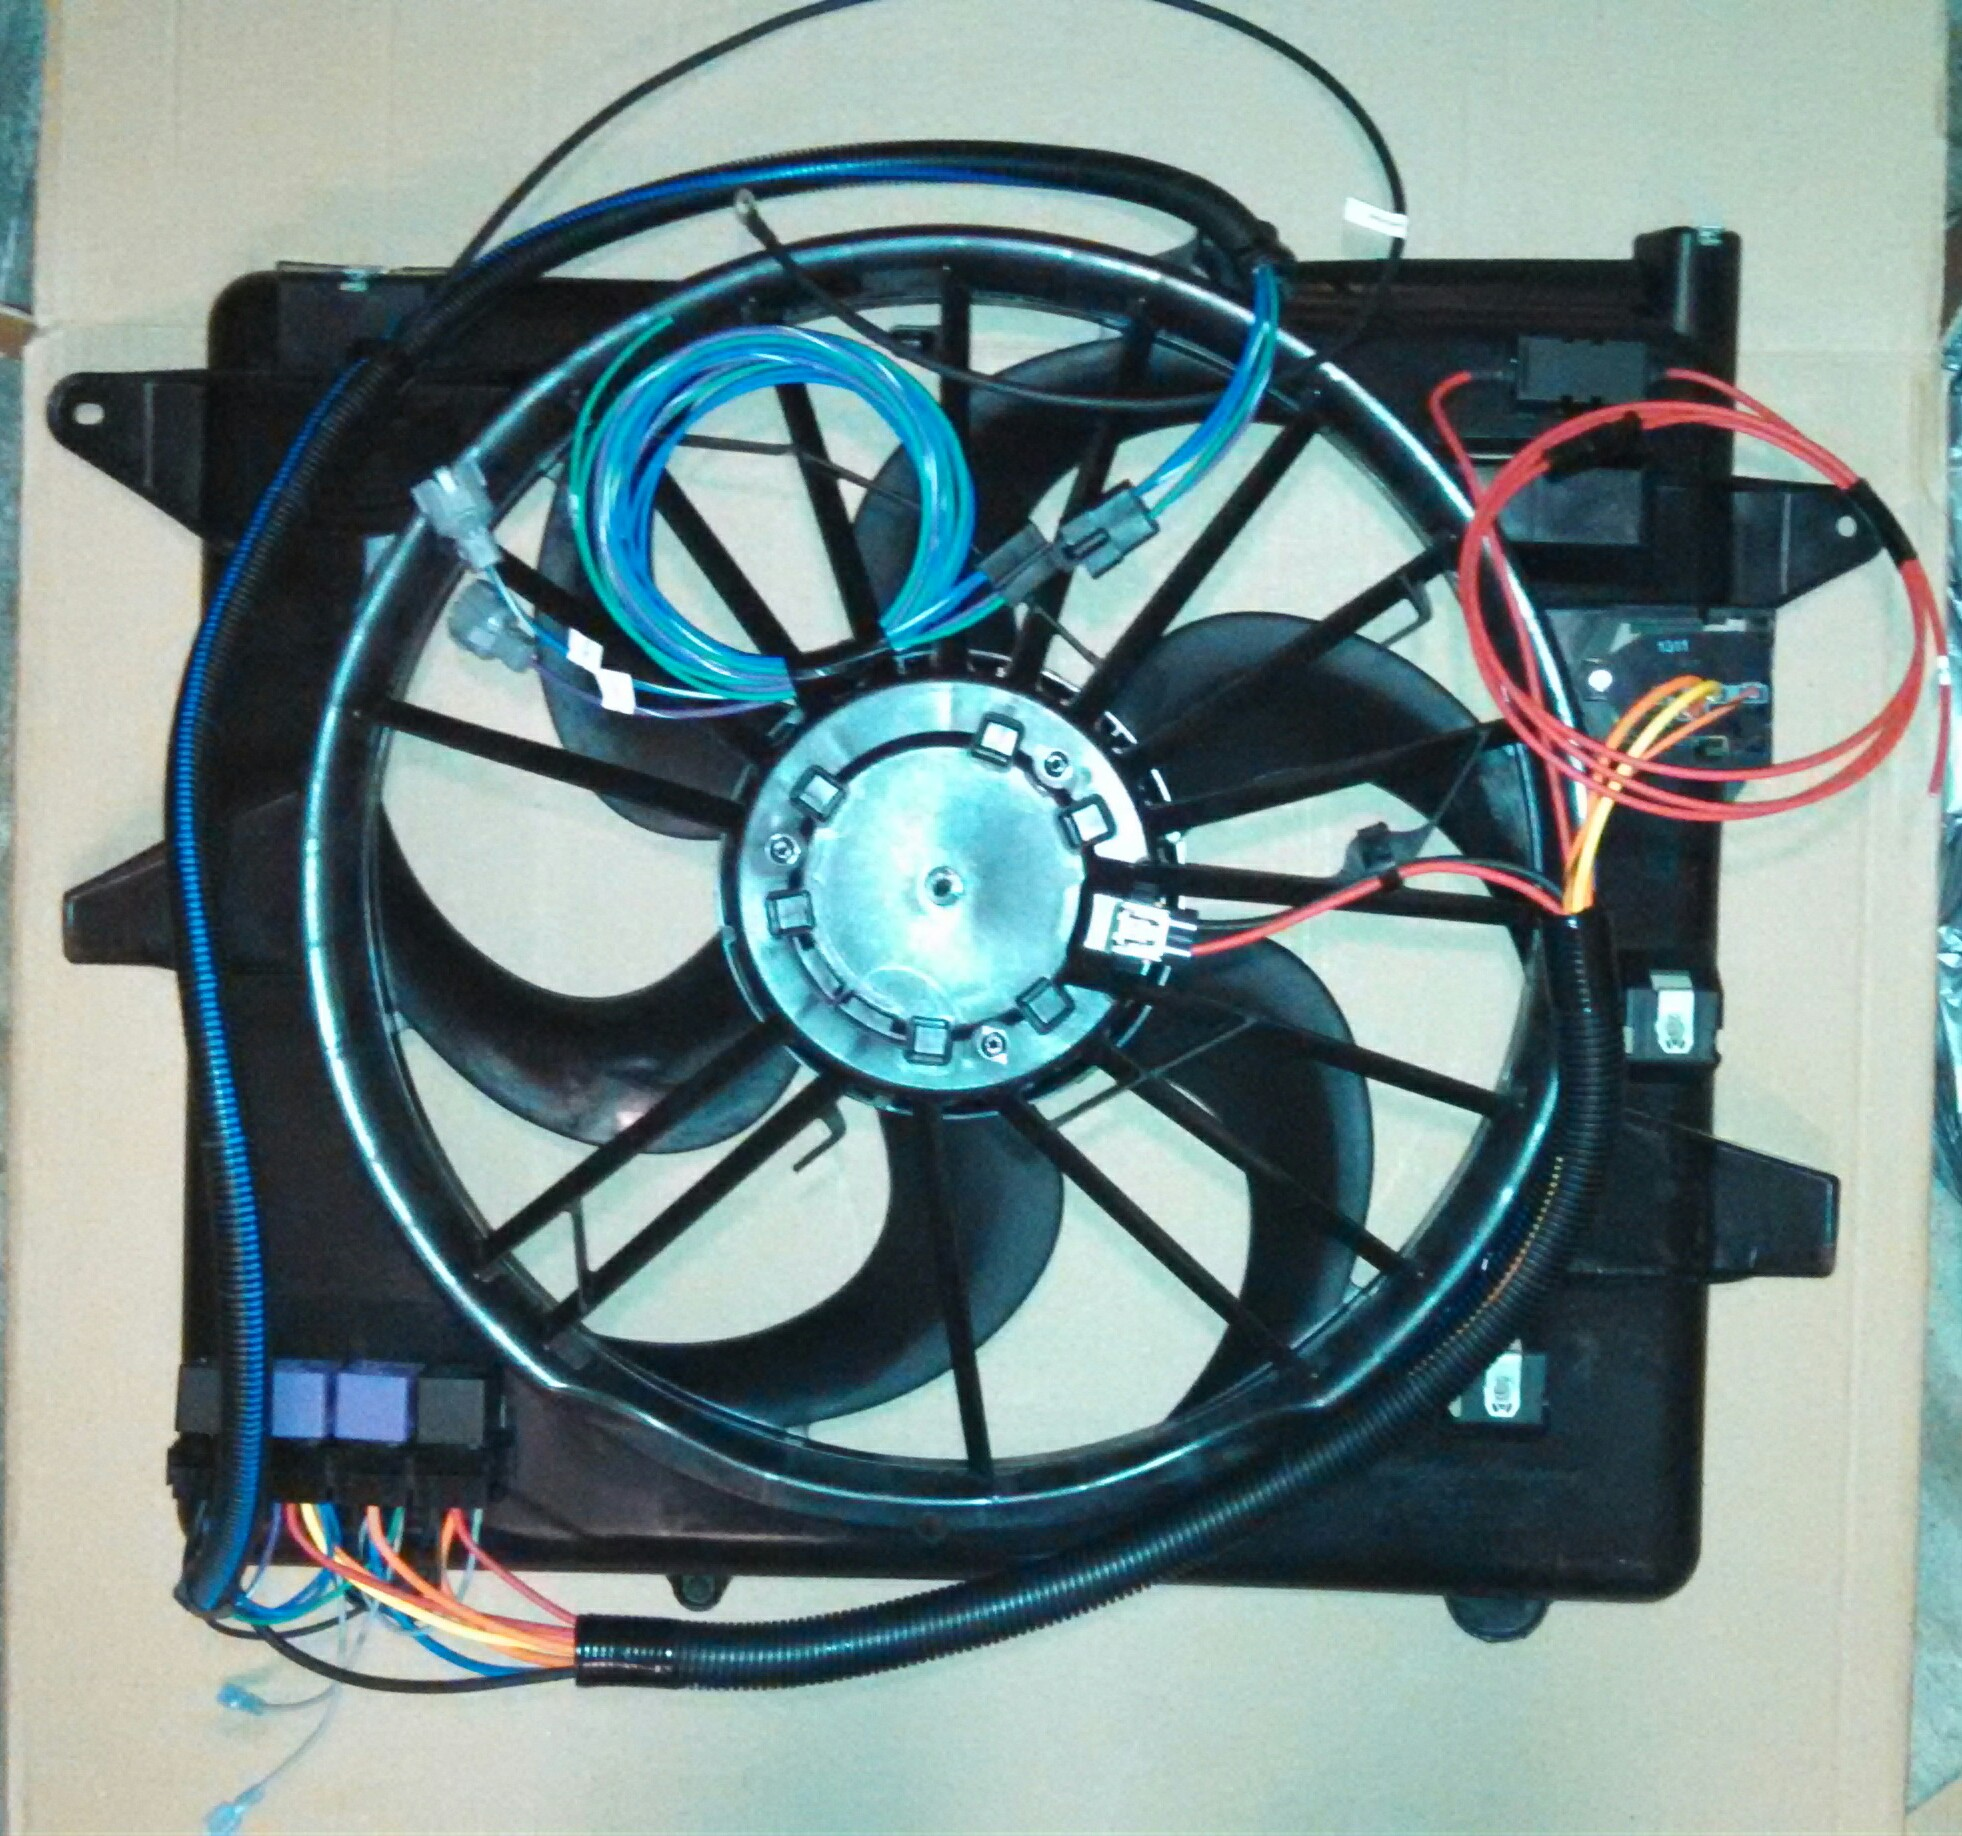 hight resolution of dual fans wiring to switch img 20140823 112529 668 1 jpg